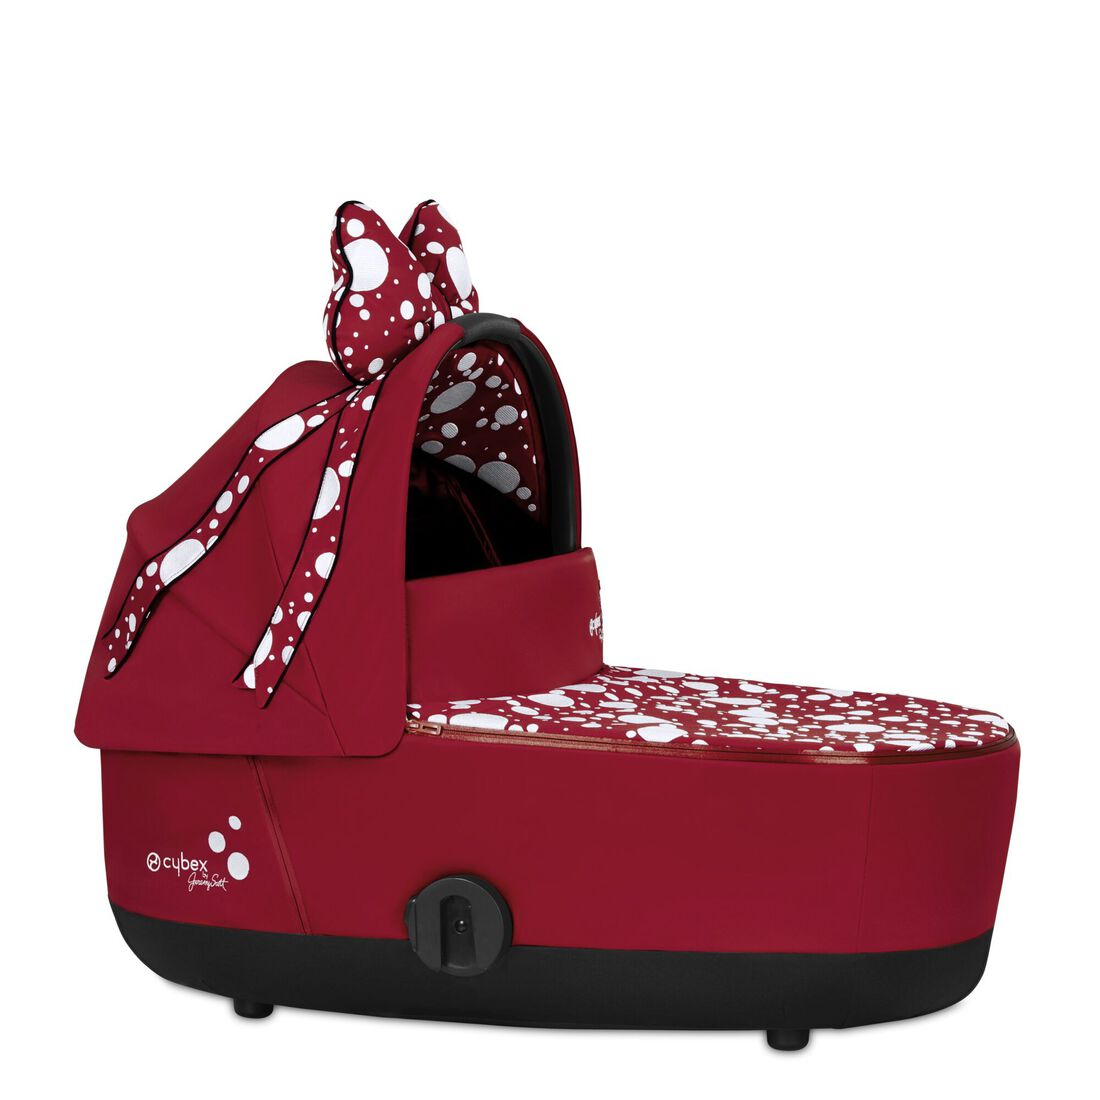 CYBEX Mios Lux Carry Cot - Petticoat Red in Petticoat Red large Bild 1